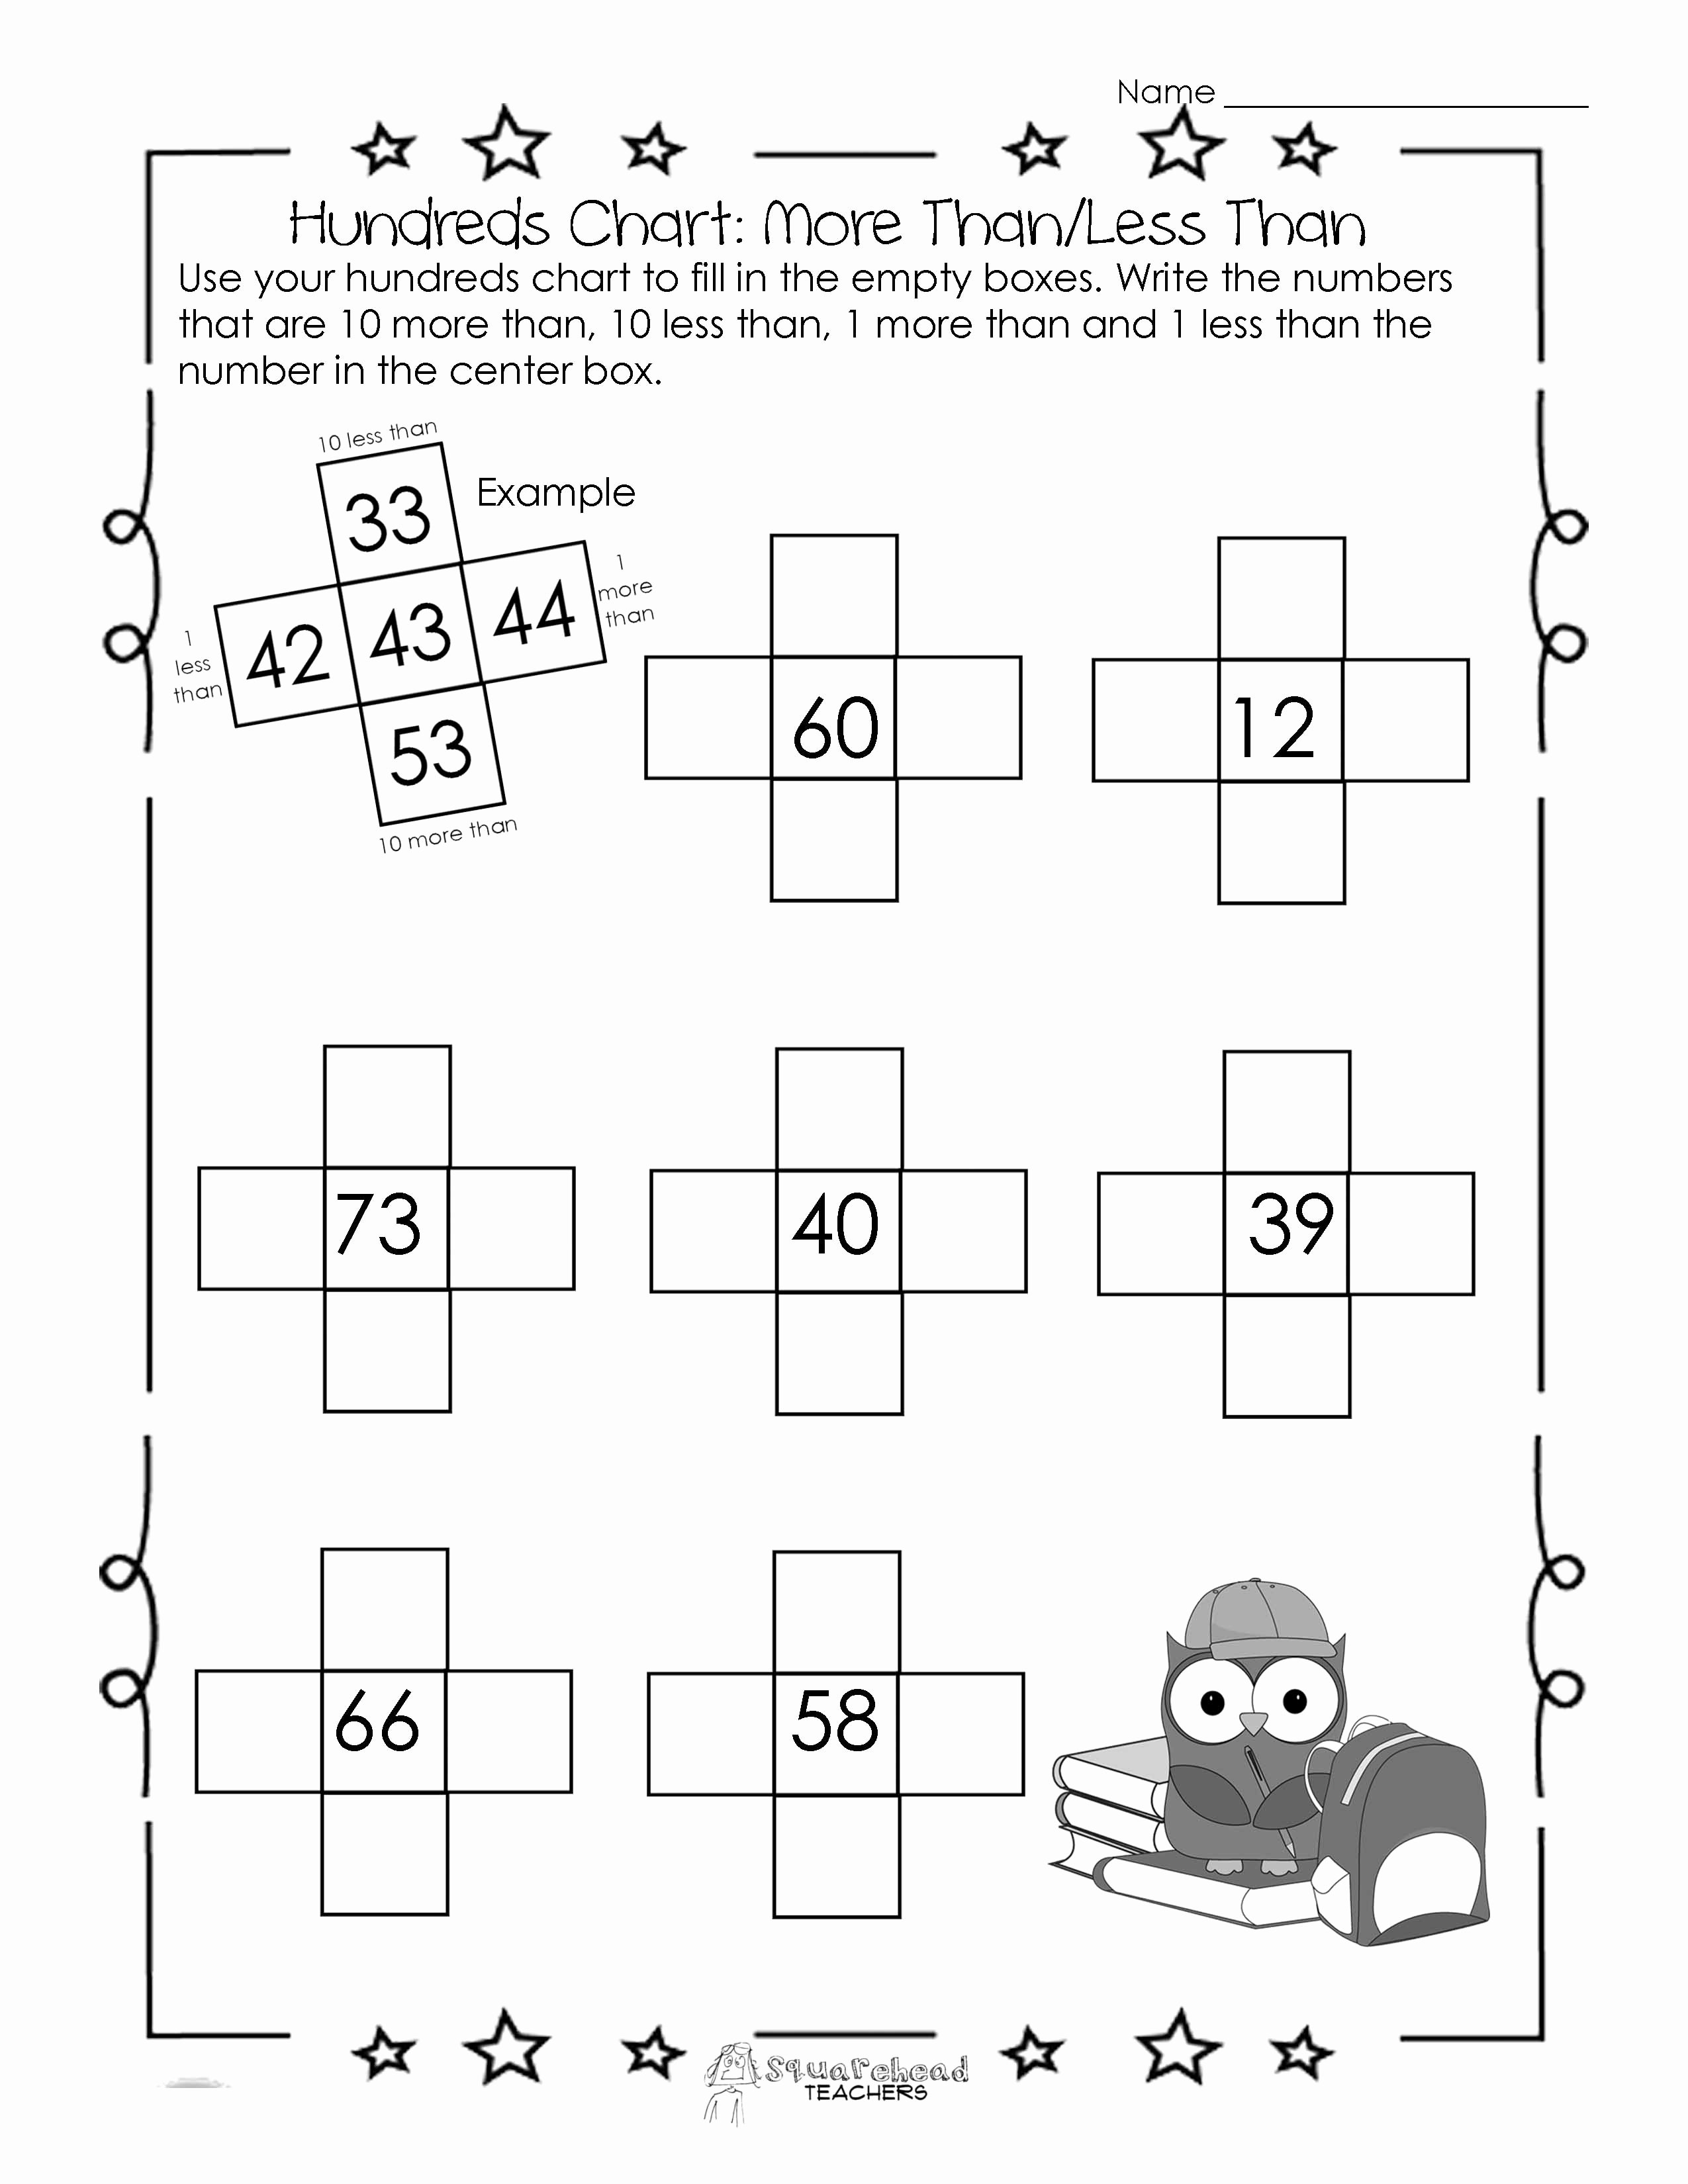 50 Ten More Ten Less Worksheet